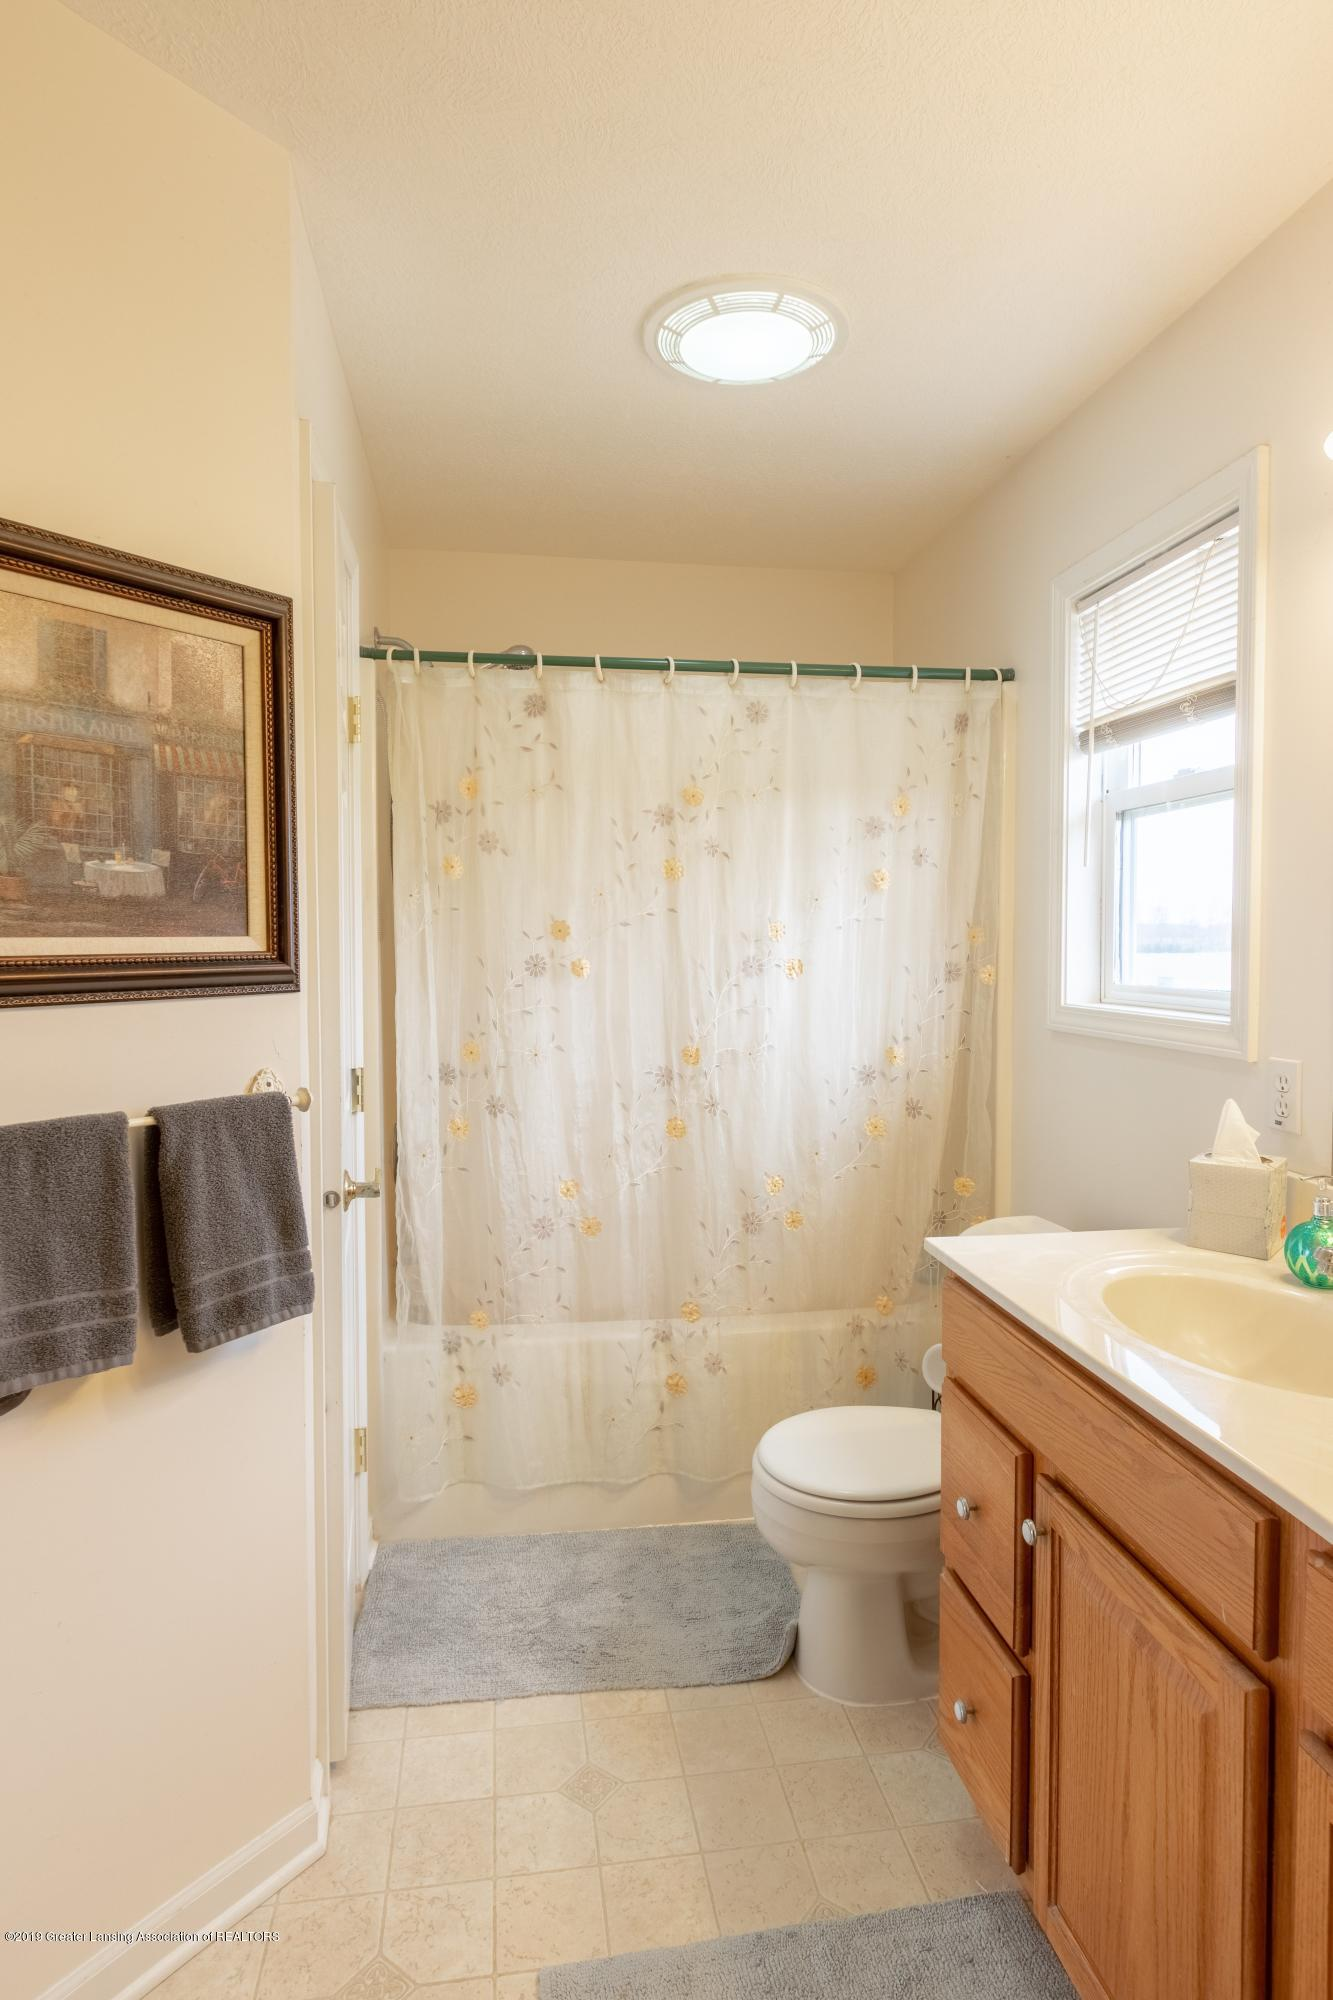 6121 W Centerline Rd - Master Bathroom - 20